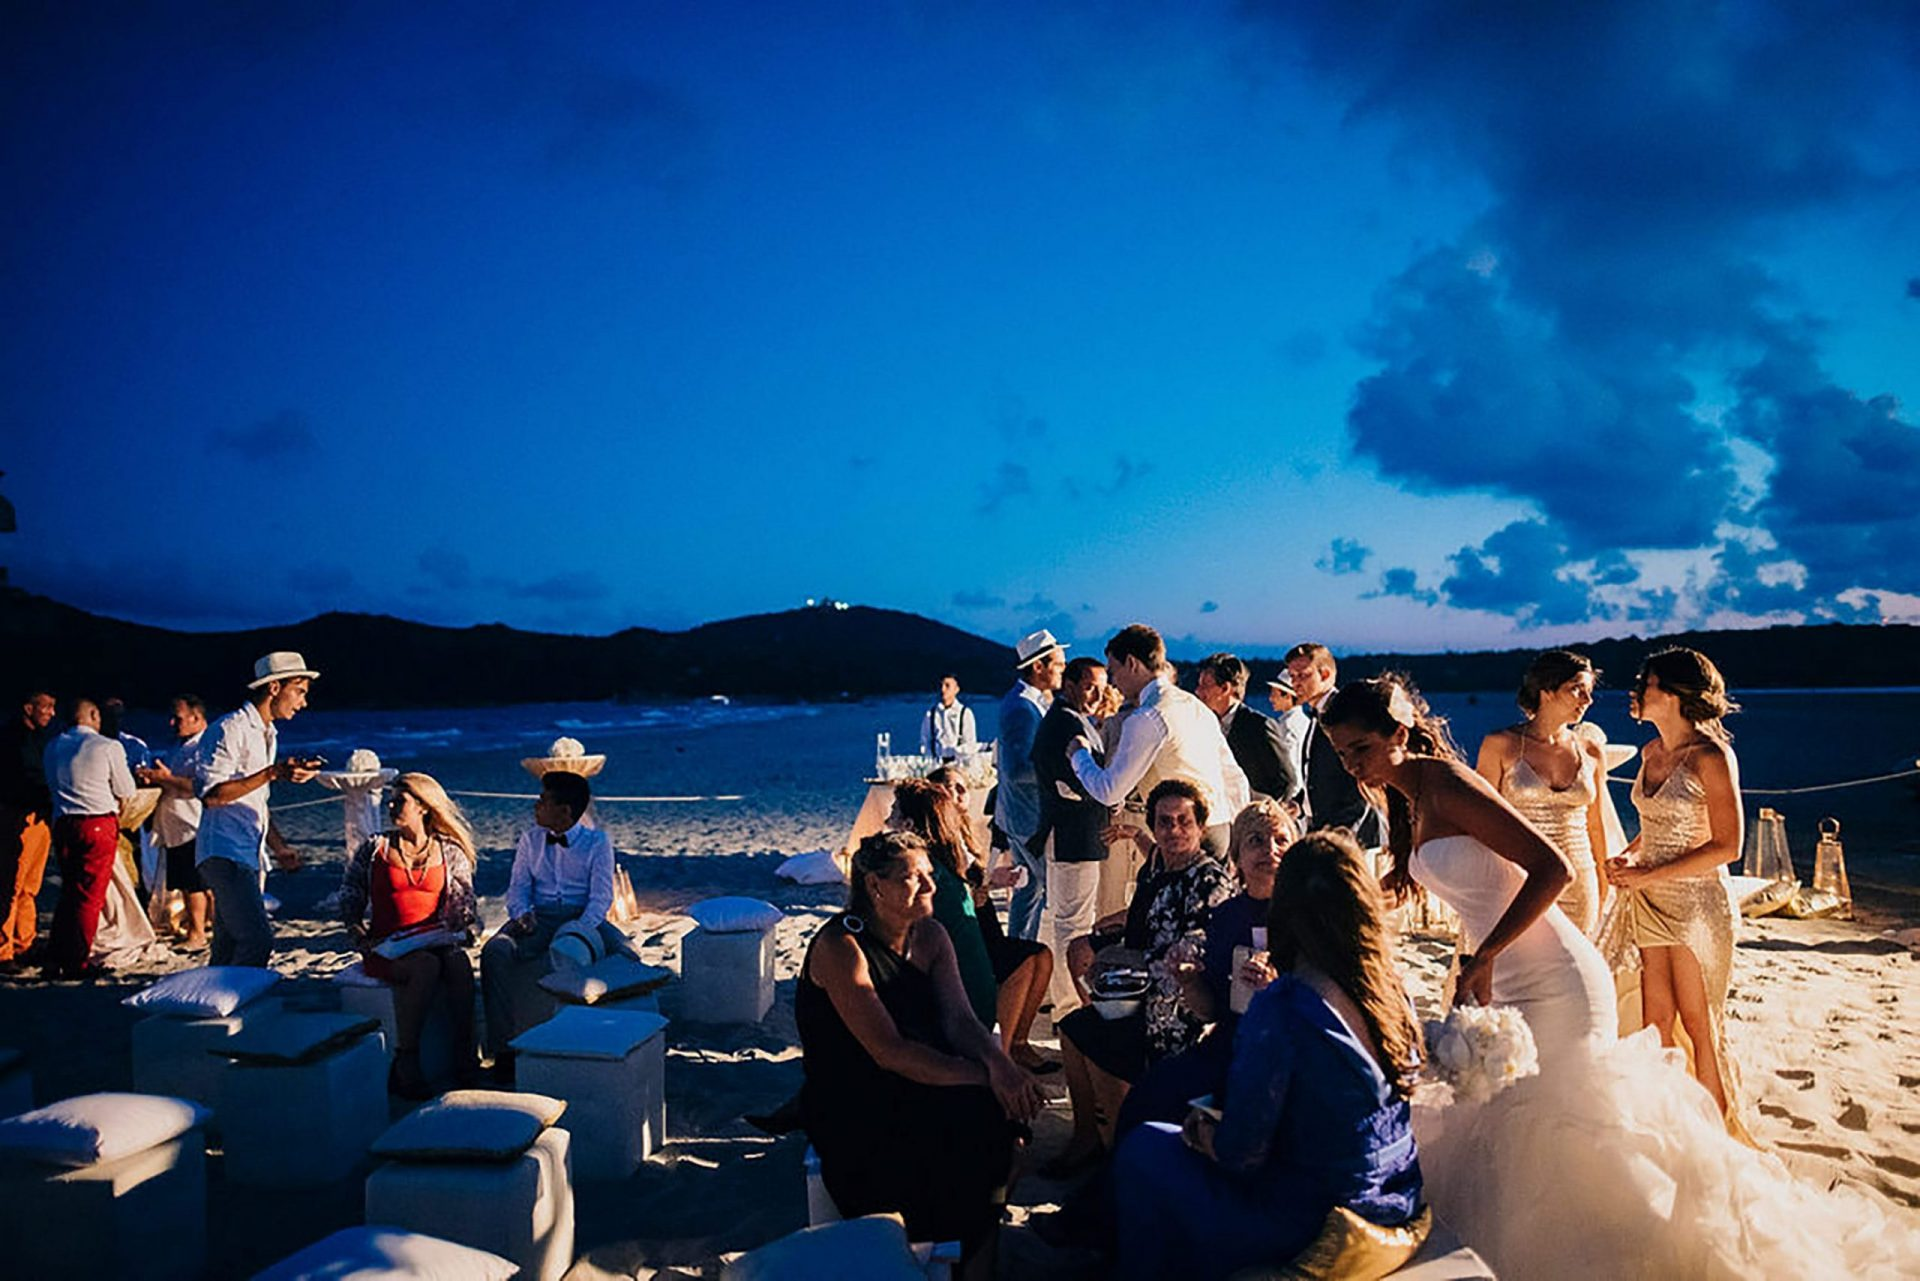 Andrea and Sebastien, wedding party on the beach